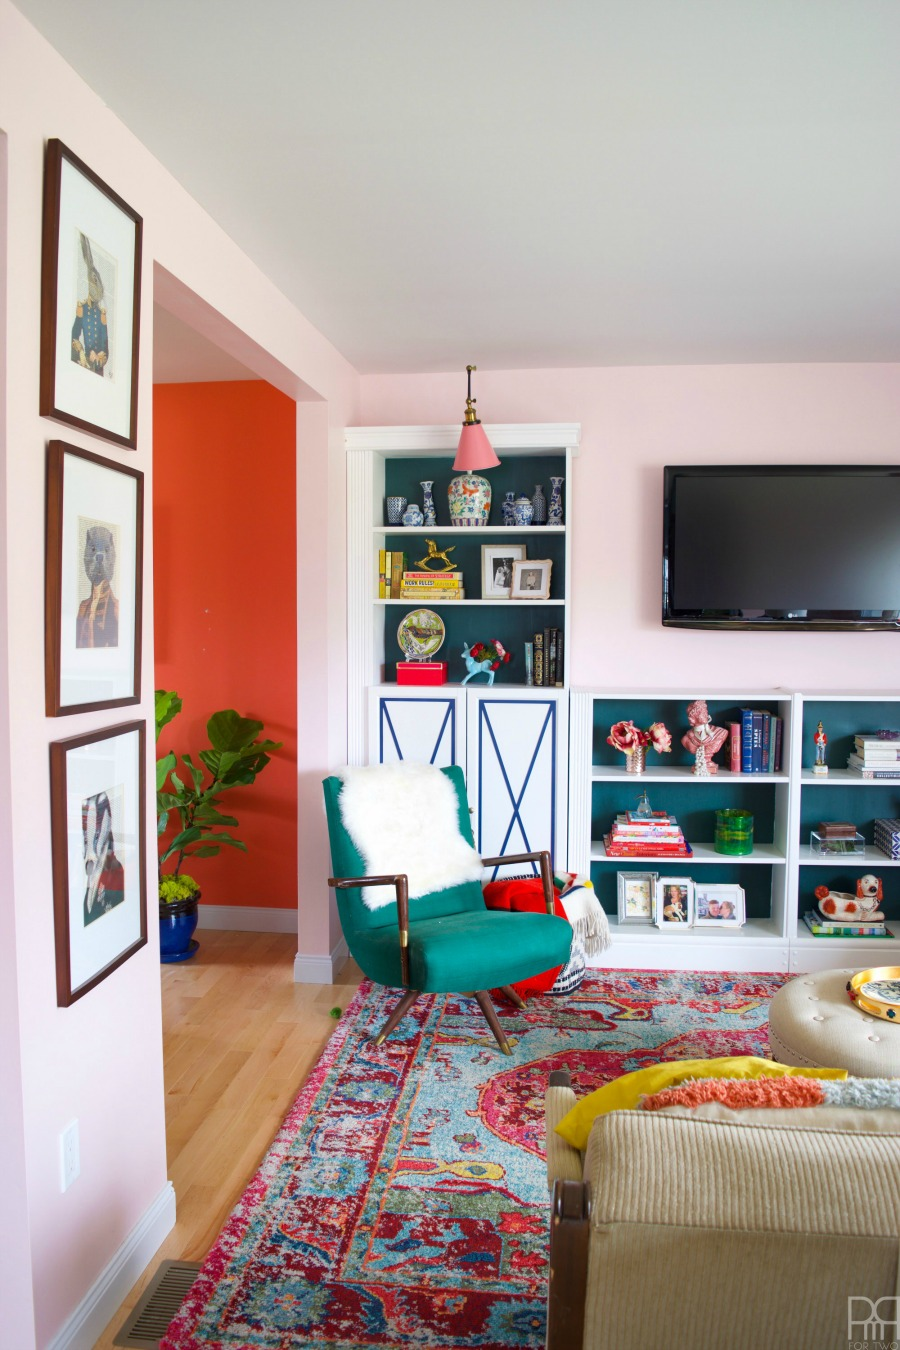 Eclectic Home Tour of PMQ for Two - get tons of renter friendly decorating and DIY ideas like the inexpensive bookcases that look like custom built-ins